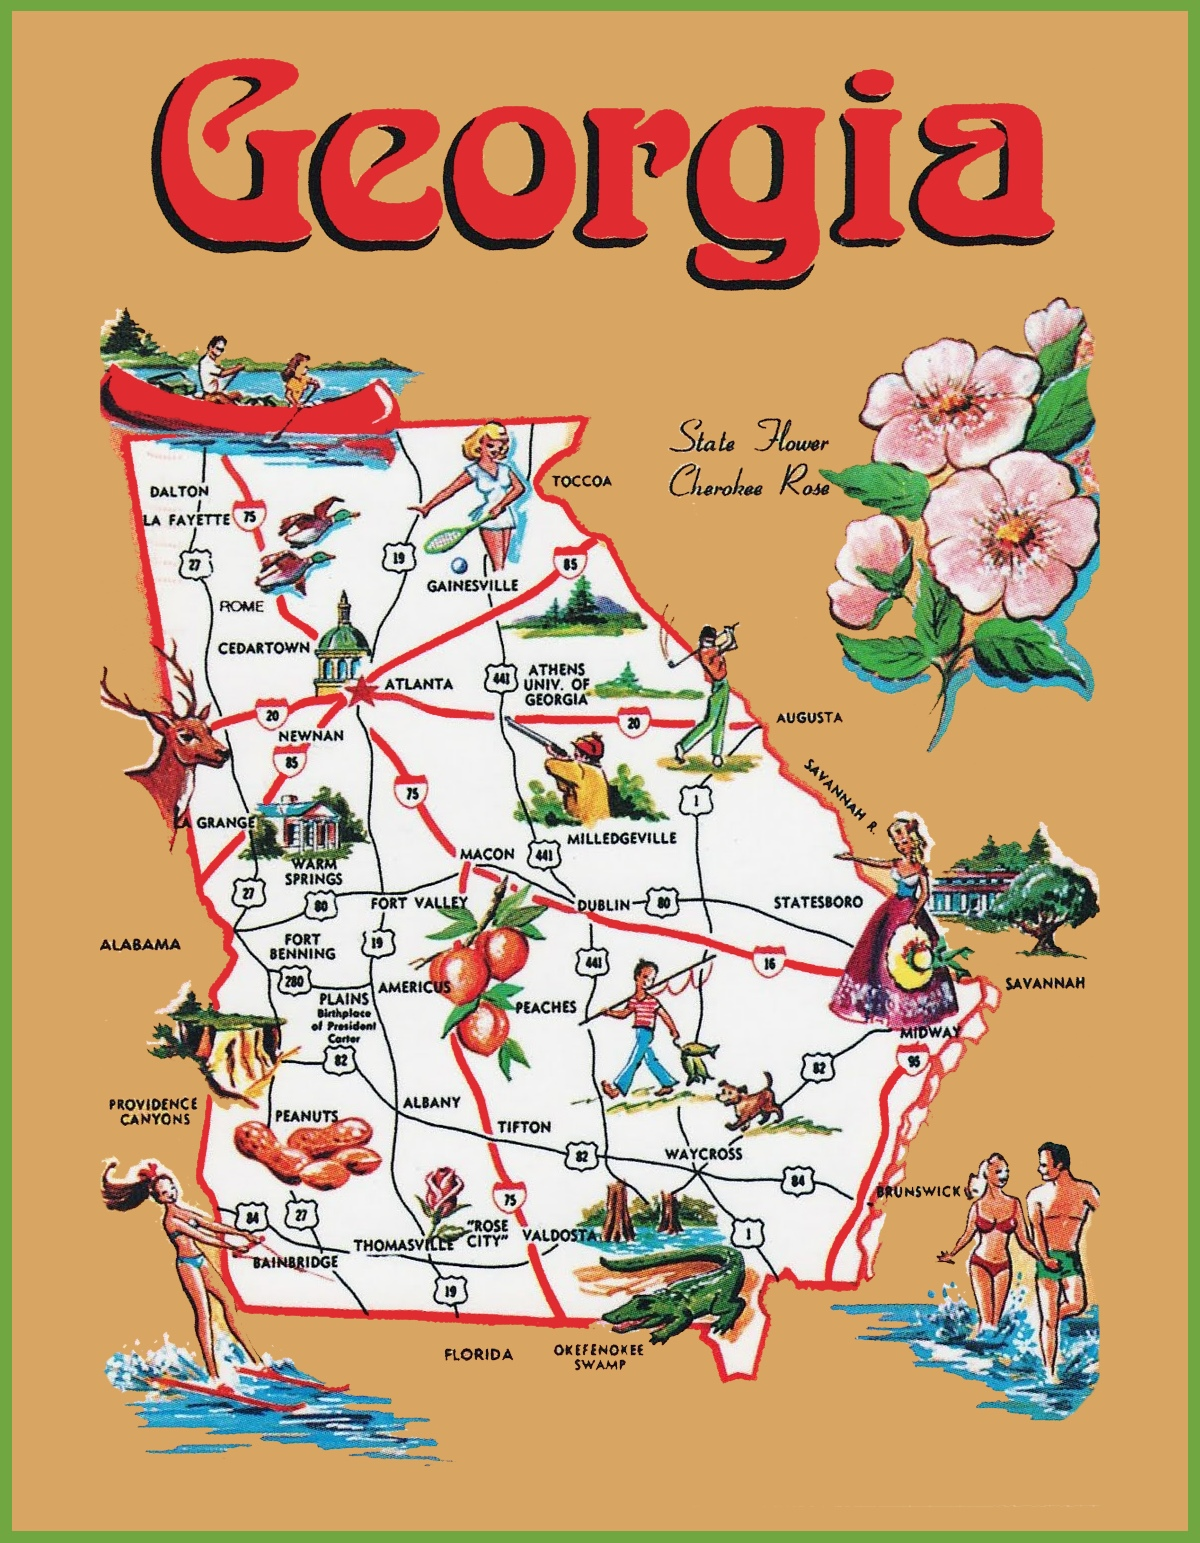 Map Of The State Of Georgia.Georgia State Maps Usa Maps Of Georgia Ga